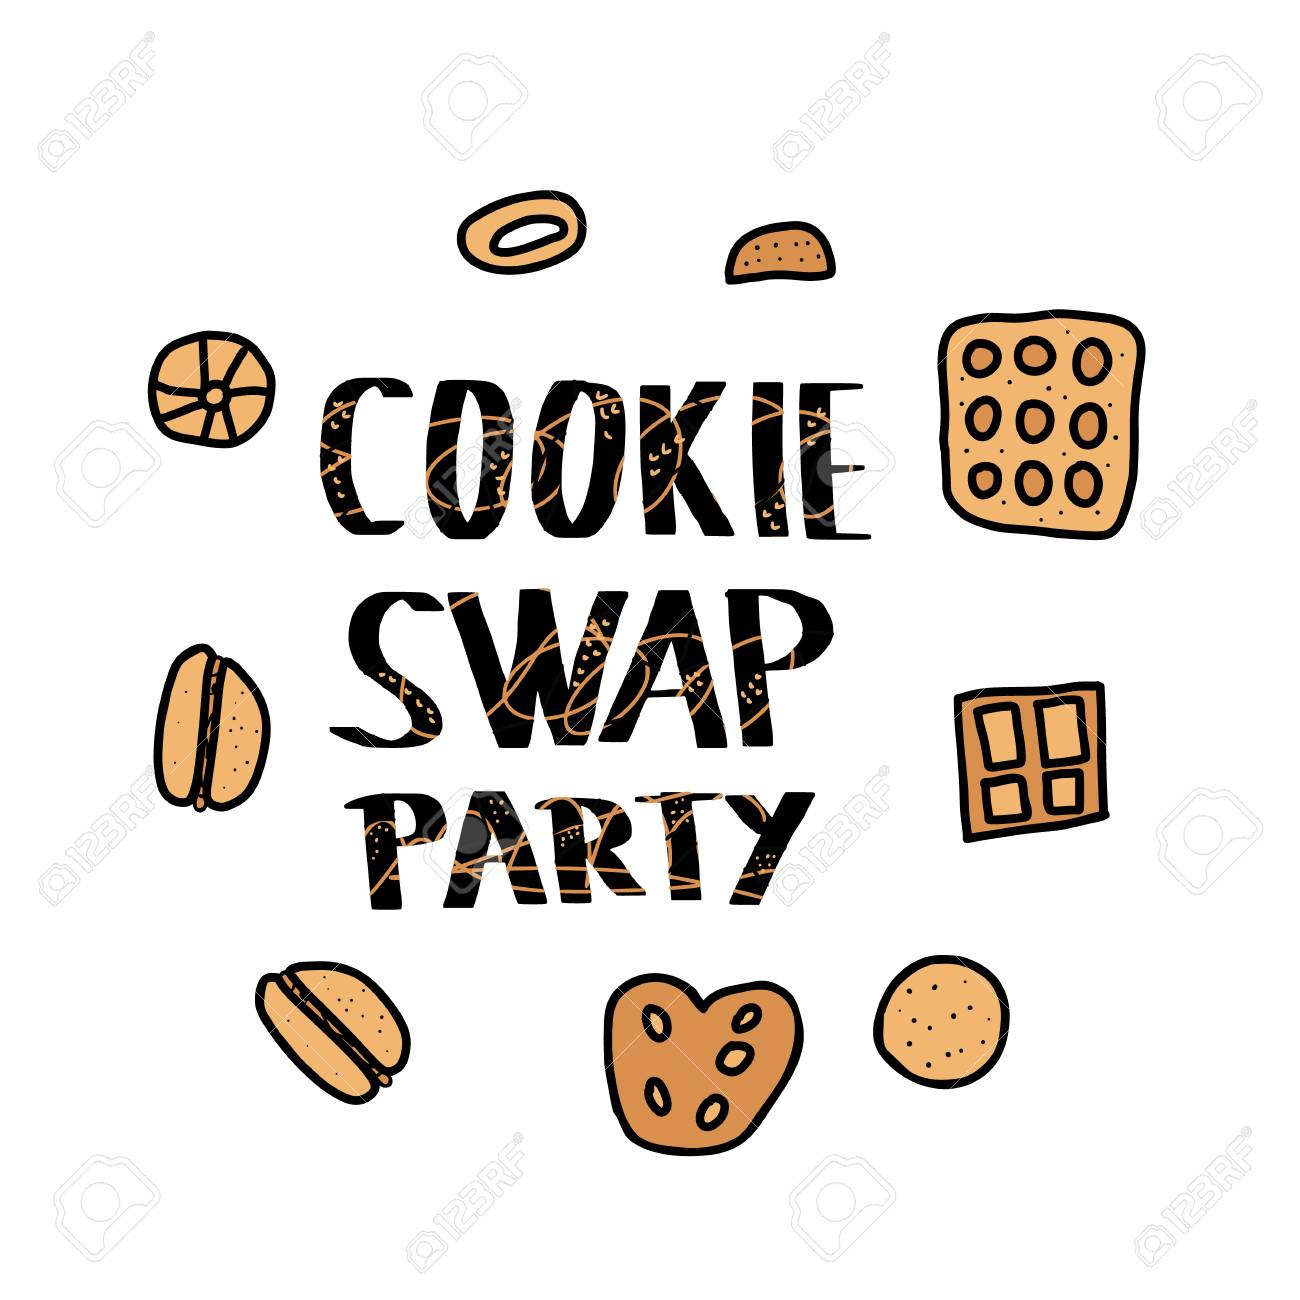 Cookie Swap Party Quote And Pastry Hand Lettering With Doodle